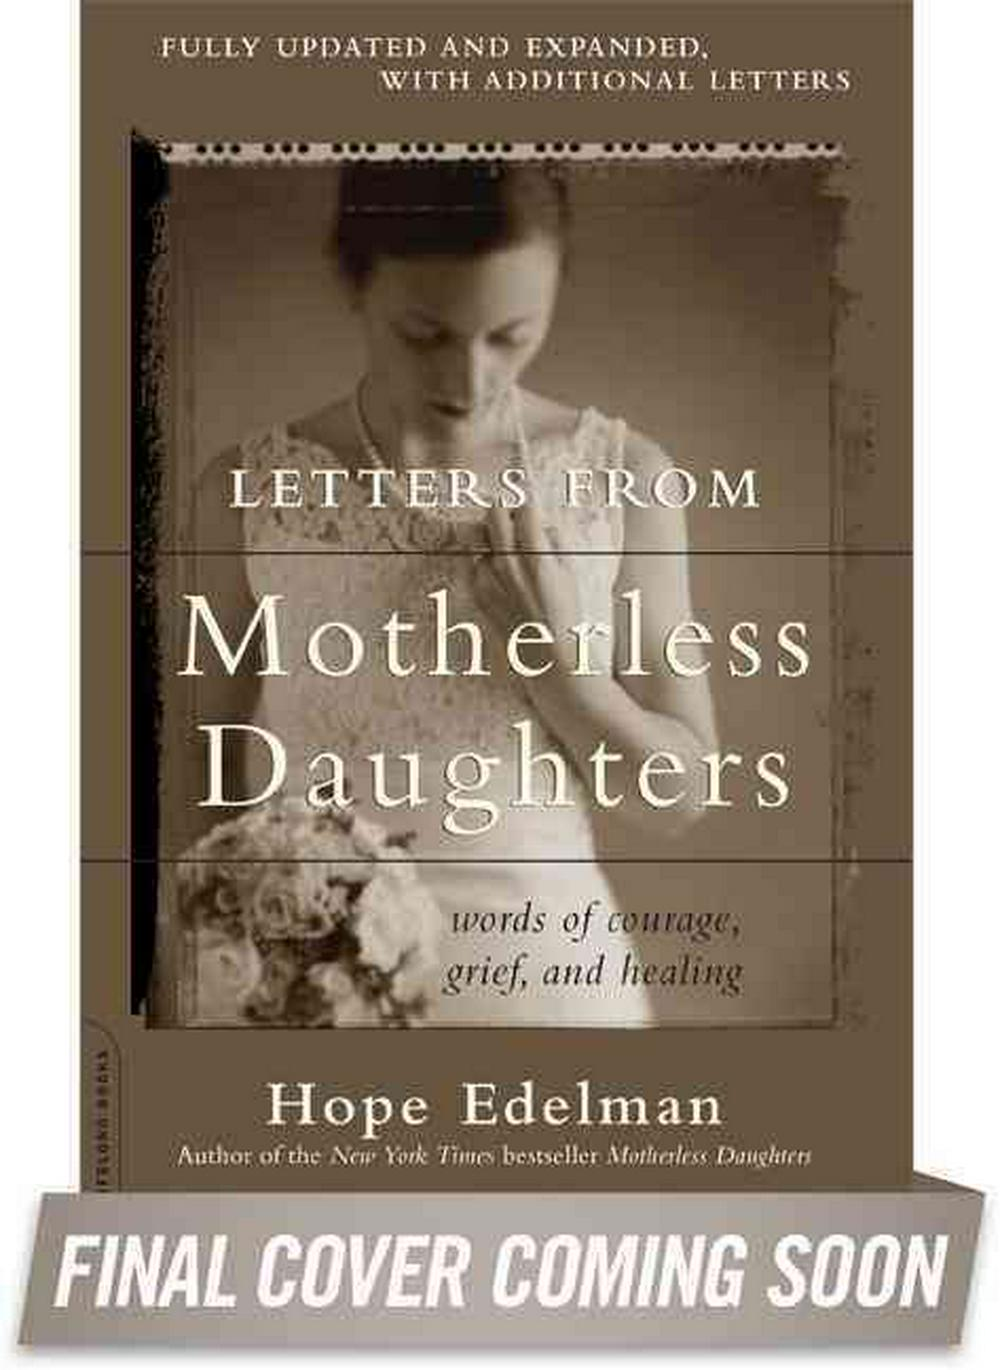 Letters from Motherless Daughters by Hope Edelman, ISBN: 9780738217536